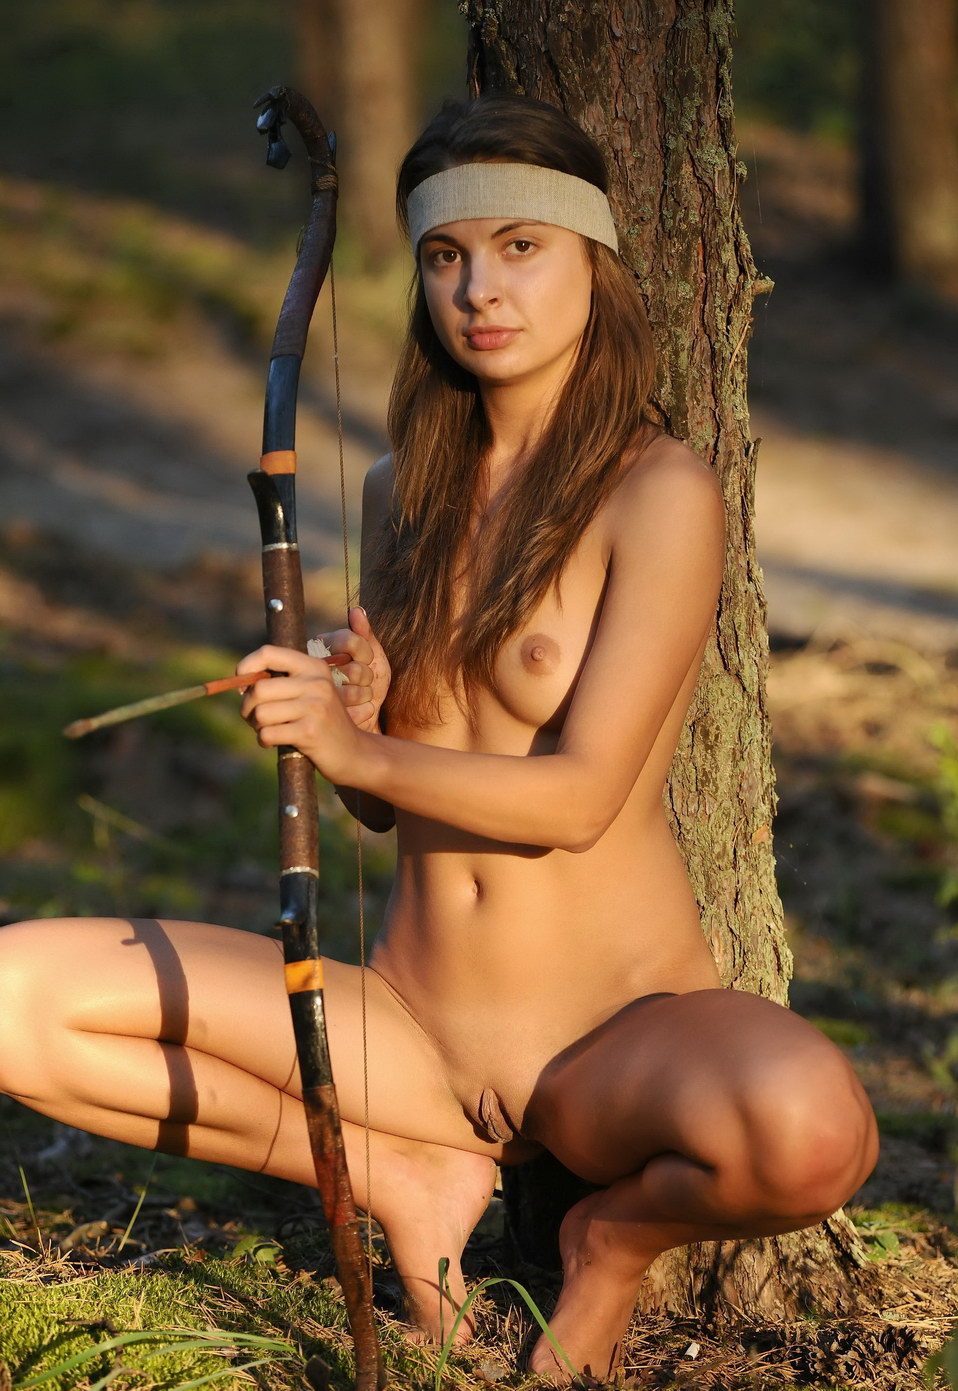 Confirm. naked woman doing archery similar. The